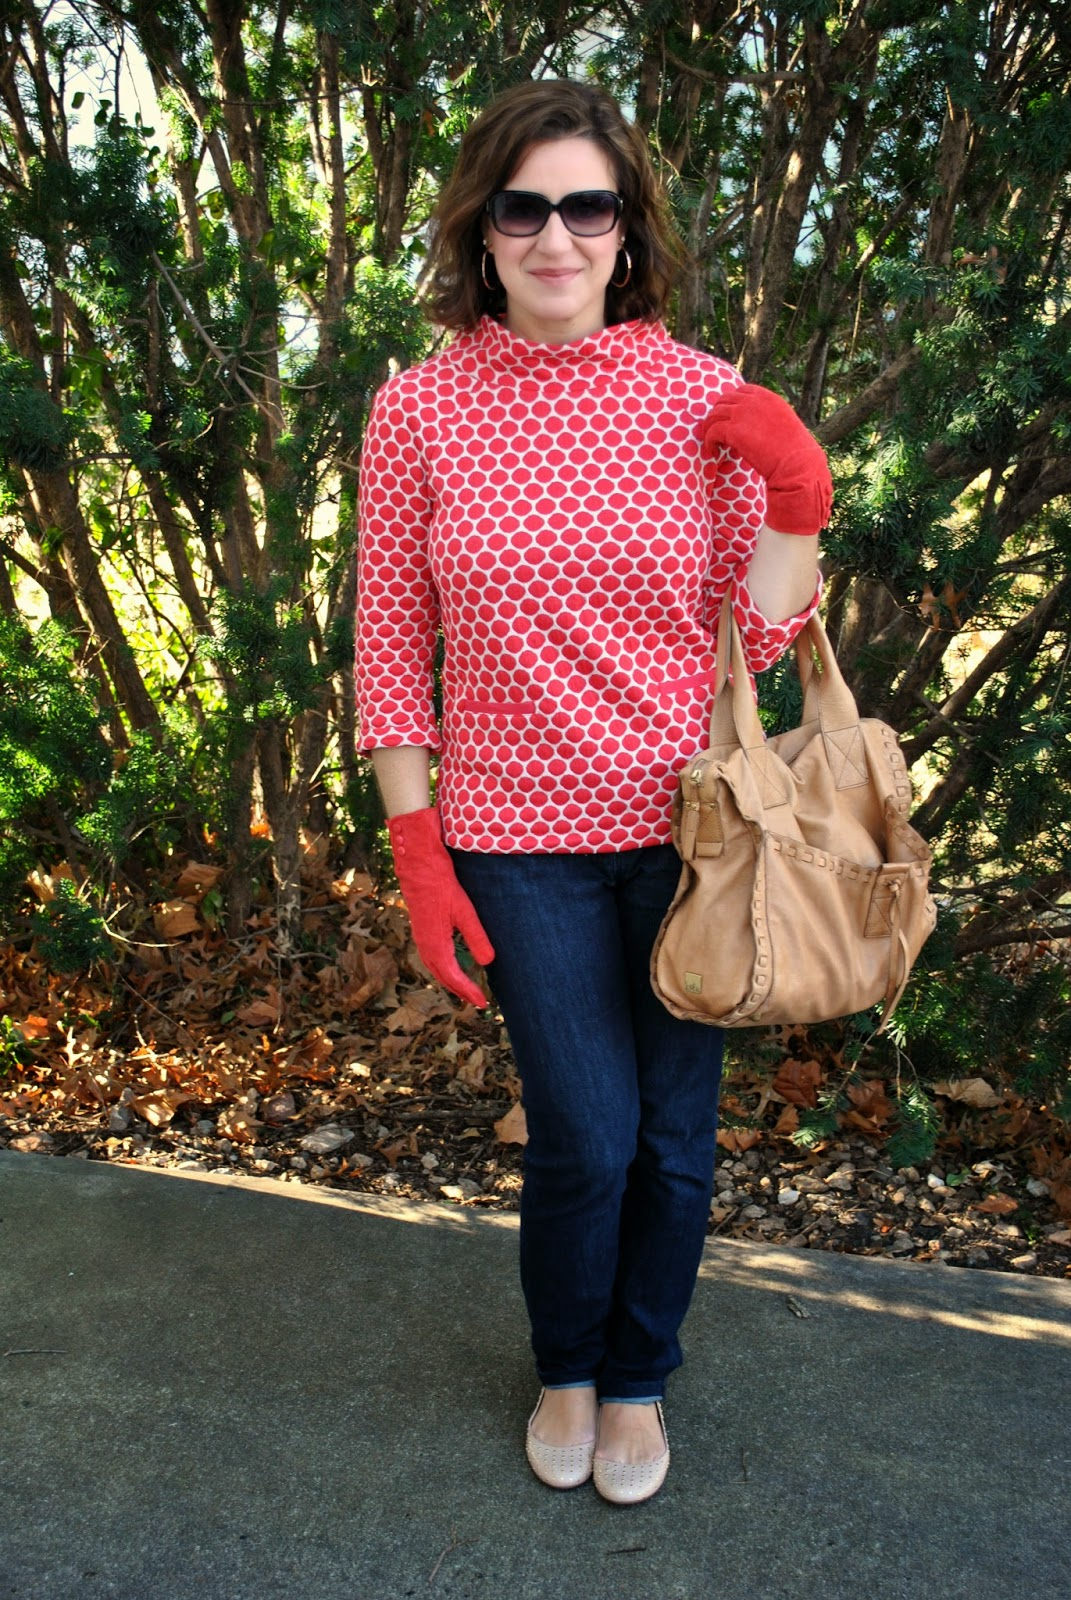 http://akstylemyway.blogspot.com/2015/01/little-red-dots.html